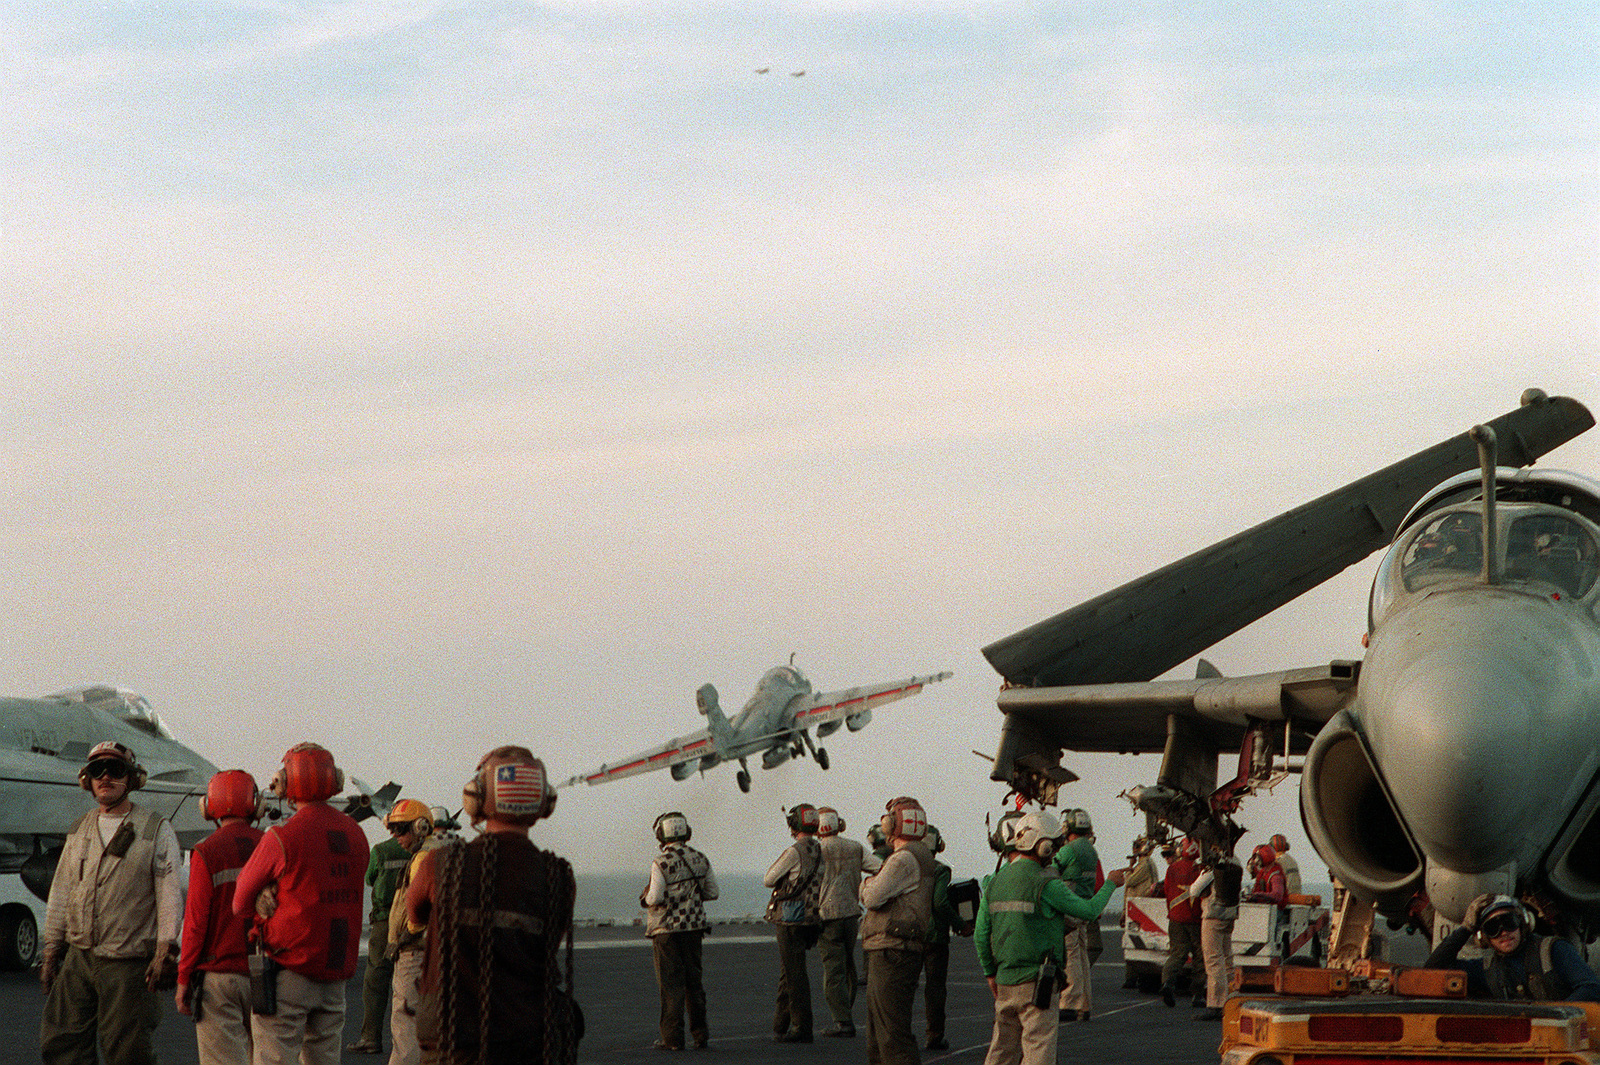 Flight deck crewmen aboard the aircraft carrier USS SARATOGA (CV-60) watch as an EA-6B Intruder aircraft is launched during Operation Desert Shield. An Attack Squadron 35 (VA-35) A-6E Intruder aircraft is at right